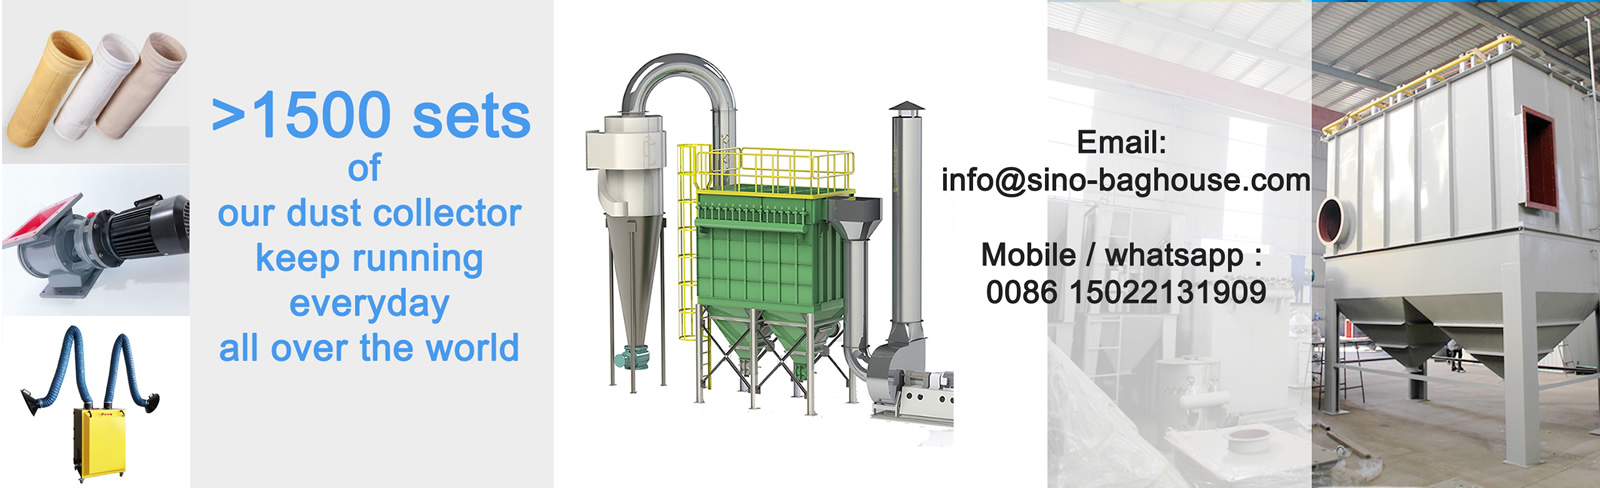 Dust collector pulse bag filter 1600